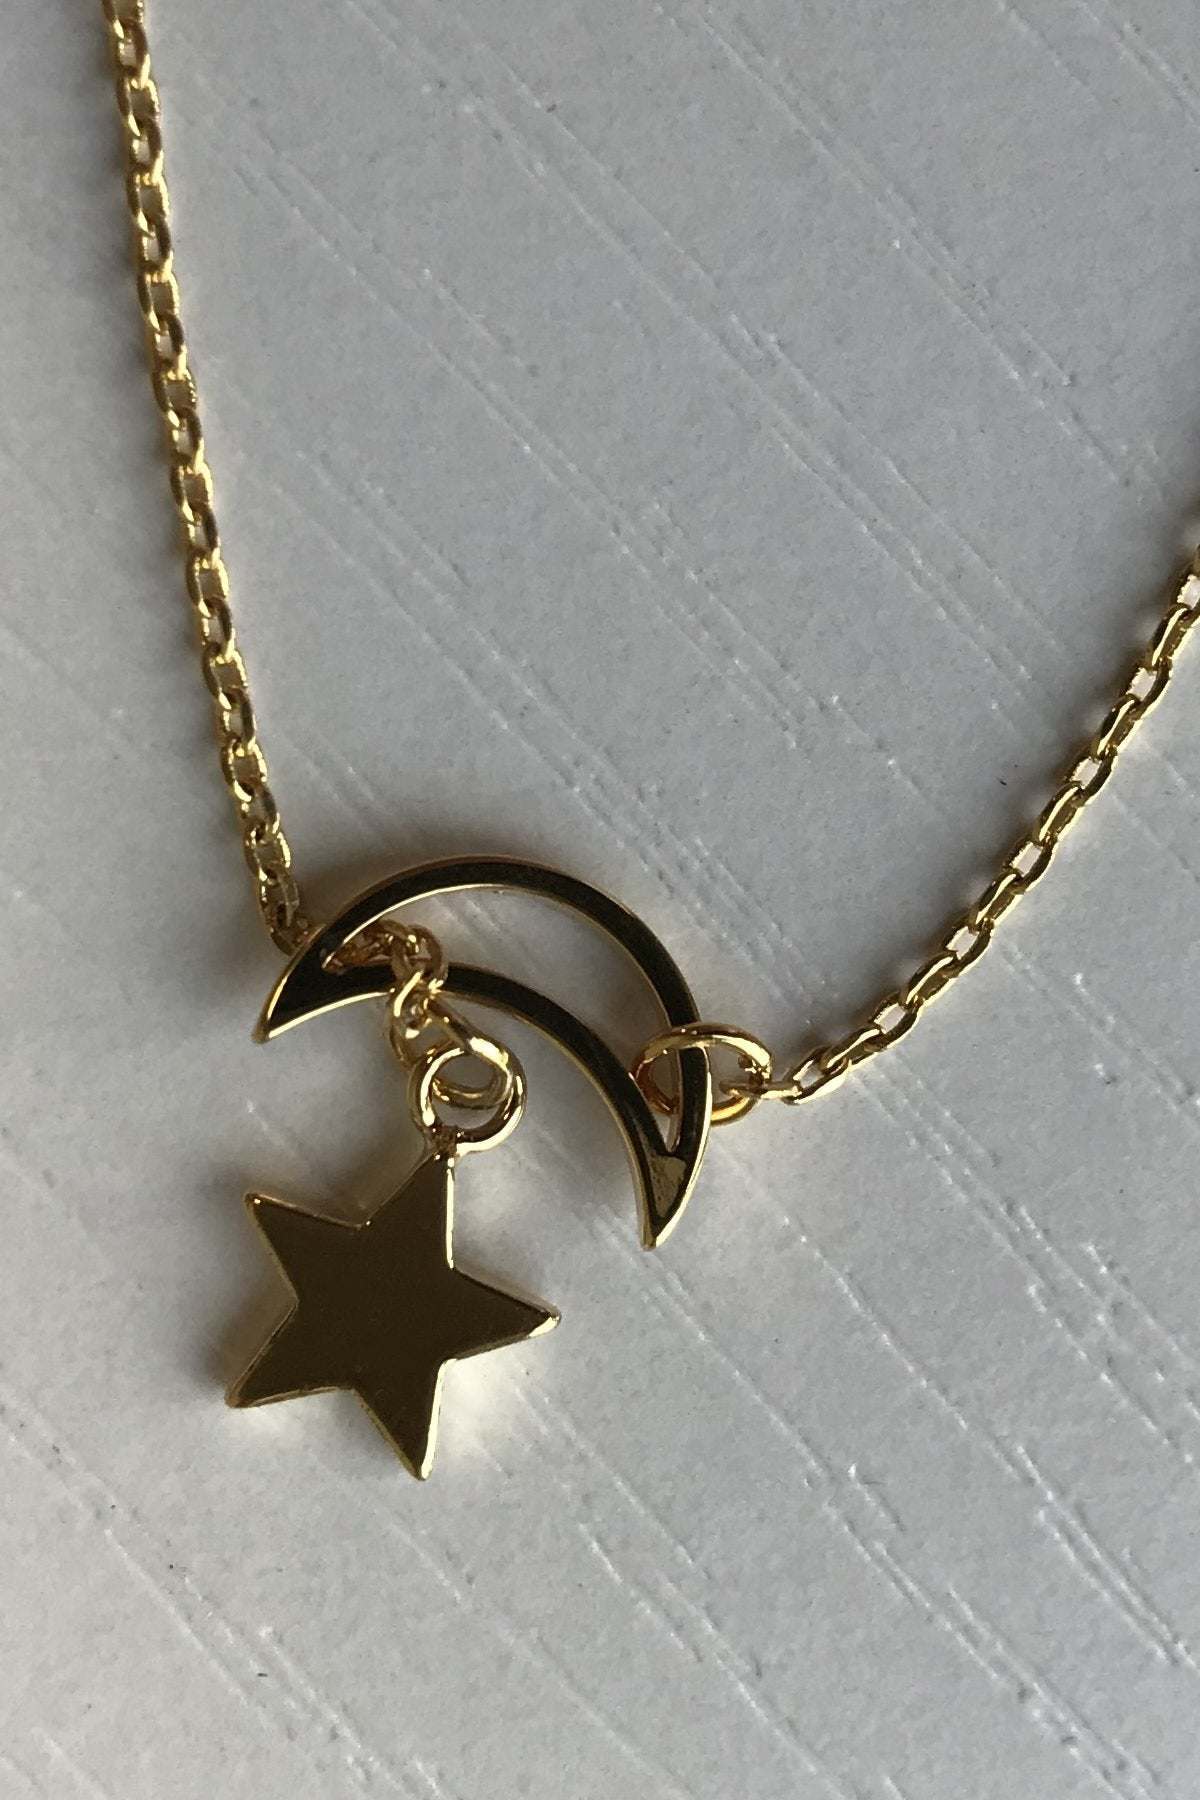 Night Sky Gold Dipped Necklace - ALL SALES FINAL